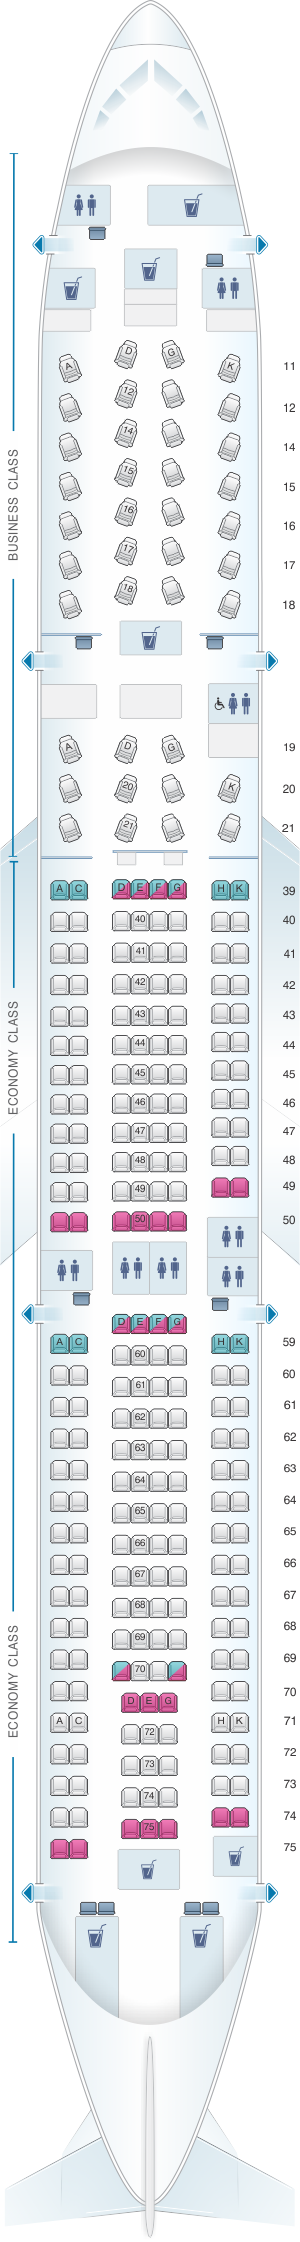 Seat map for Cathay Pacific Airways Airbus A330 300 (33E)